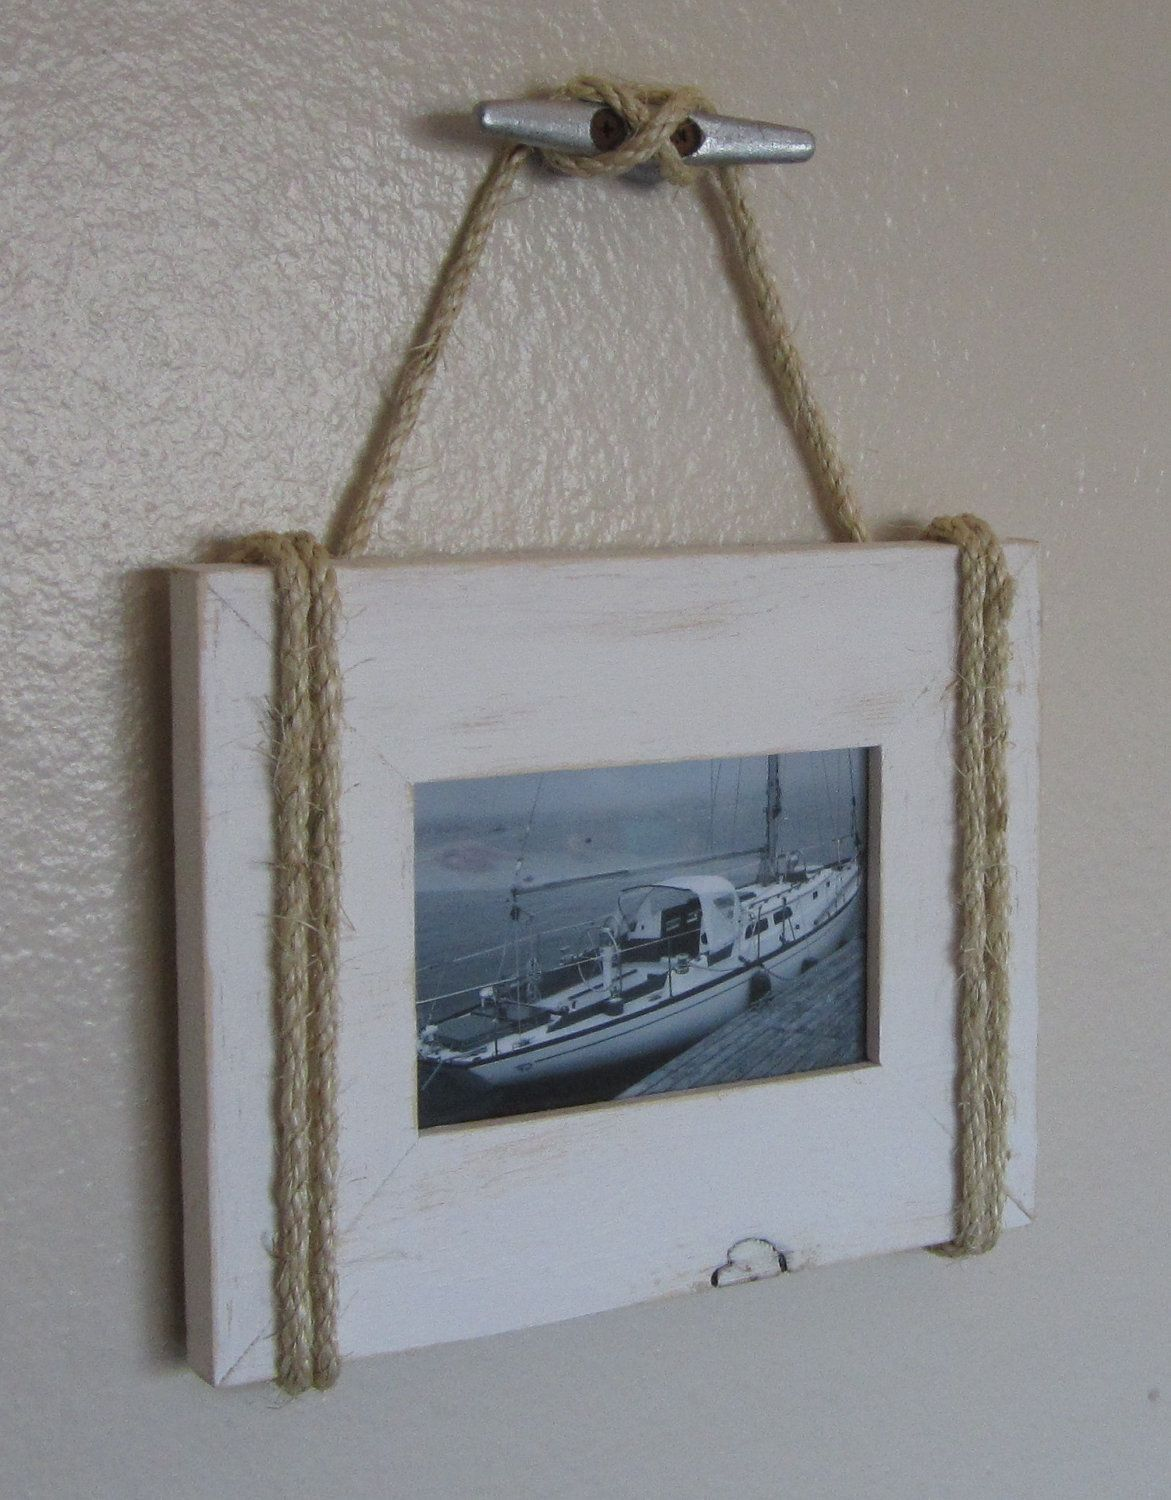 Photo of Shabby Chic Nautical Beach cottage 4X6 Rope Boat cleat Picture Frame in Distressed Whisper White | Home Decor | Housewares